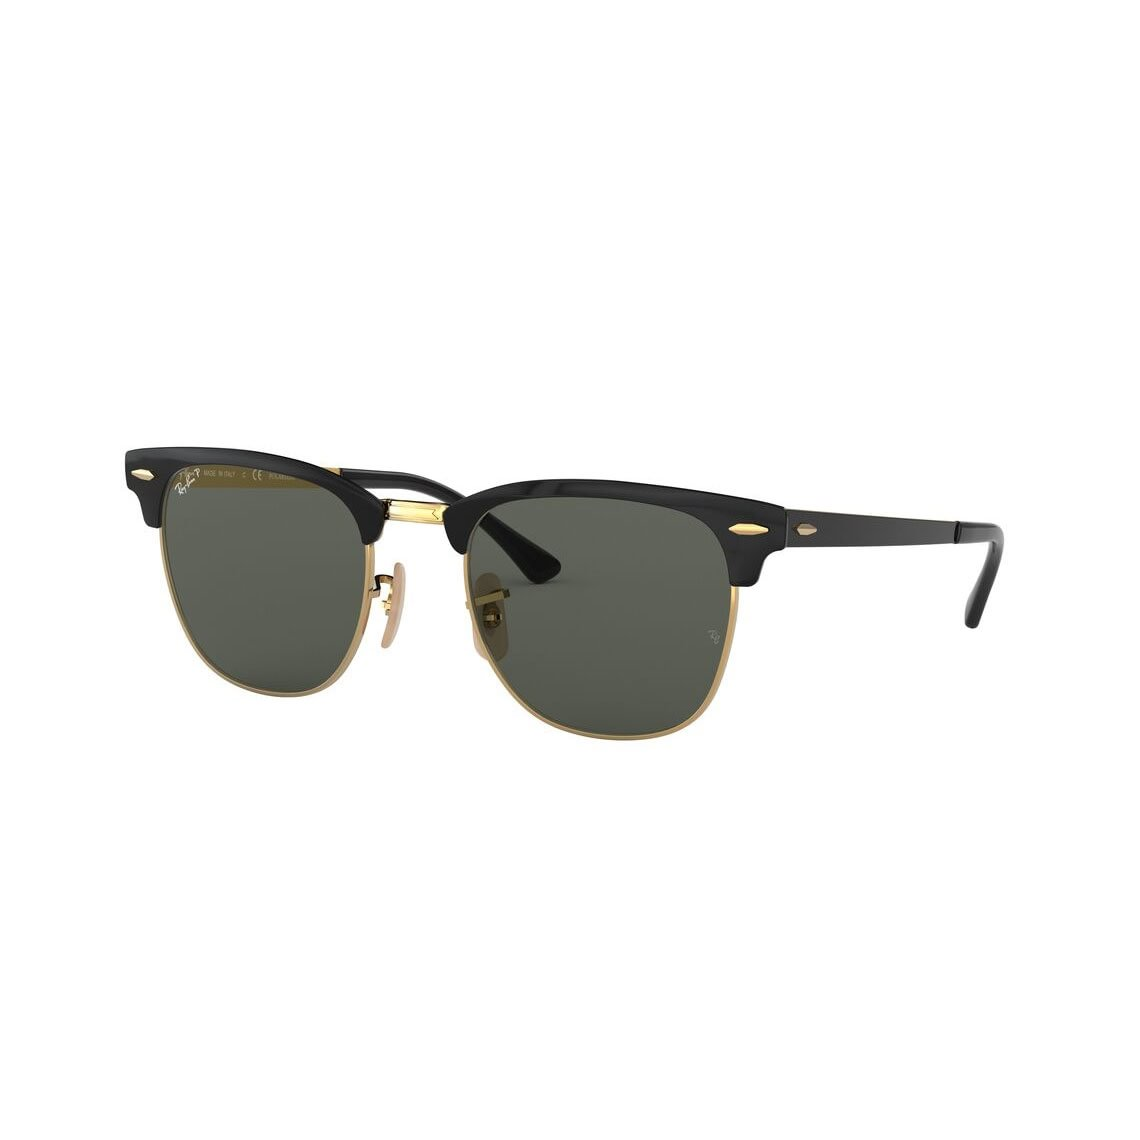 Ray-Ban Clubmaster Metal RB3716 187/58 51